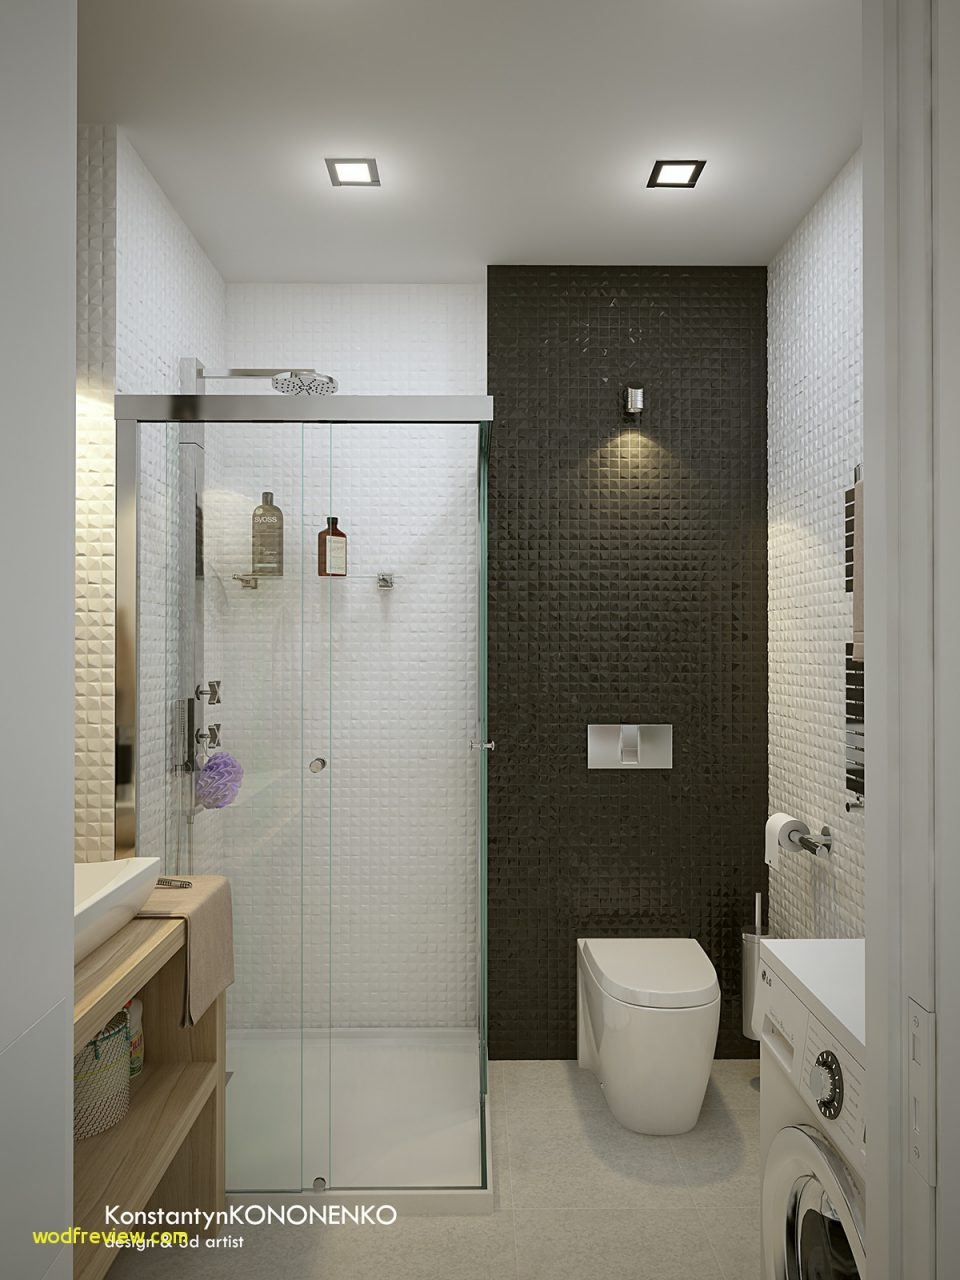 Bathroom Remodeling El Paso Tx Wodfreview